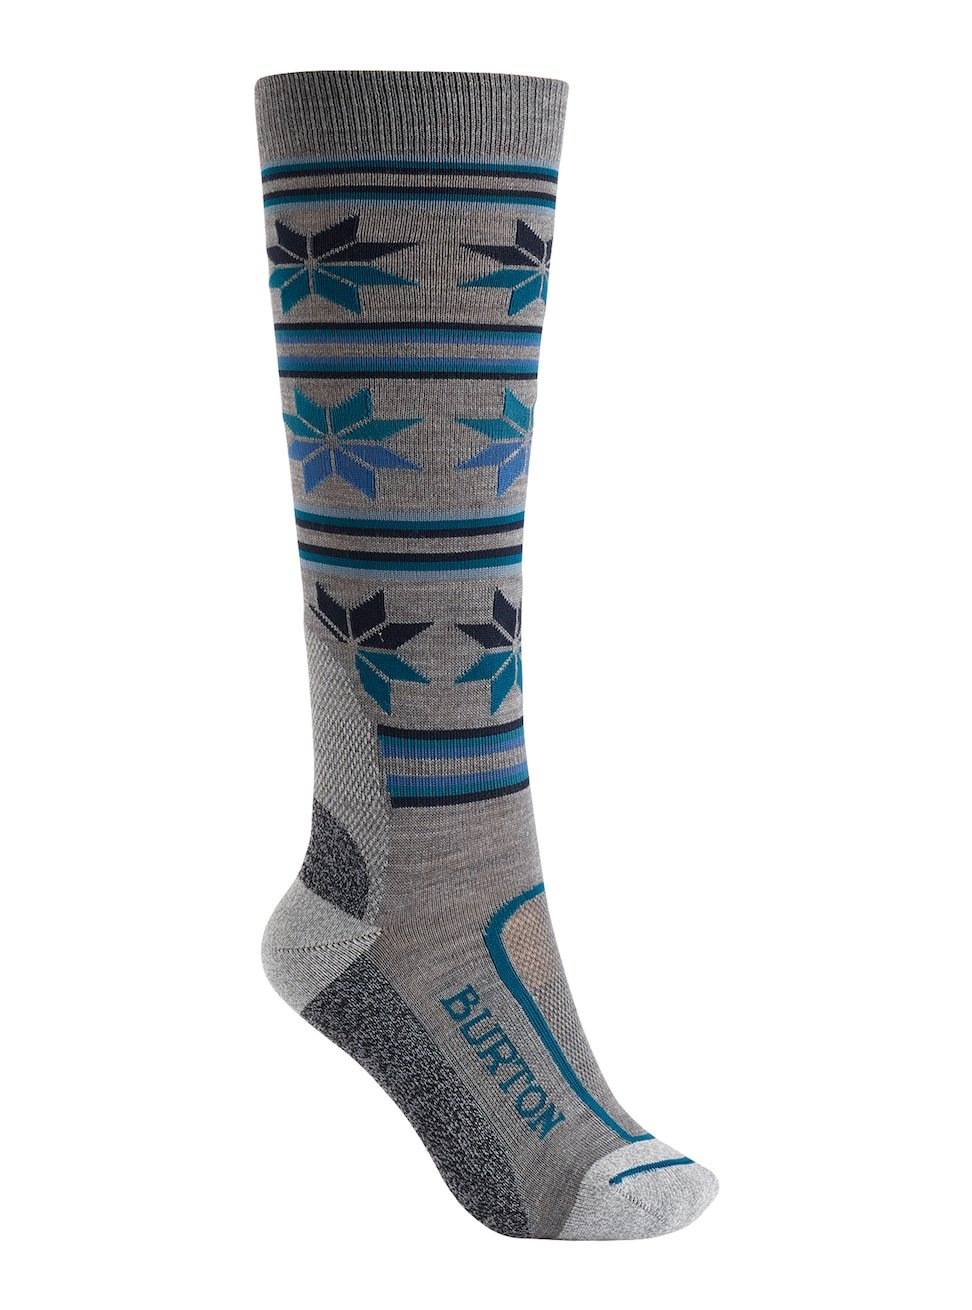 Burton Women's Ultralight Wool Sock Monument Heather Size S/M US 4-7 by Burton